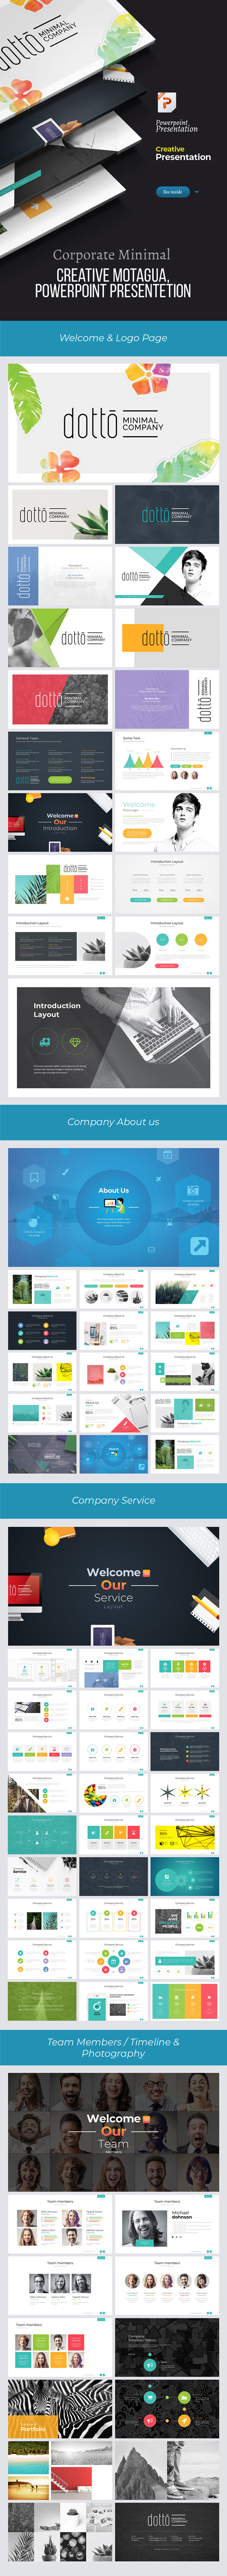 Creative Dotto Powerpoint Template - Creative PowerPoint Templates